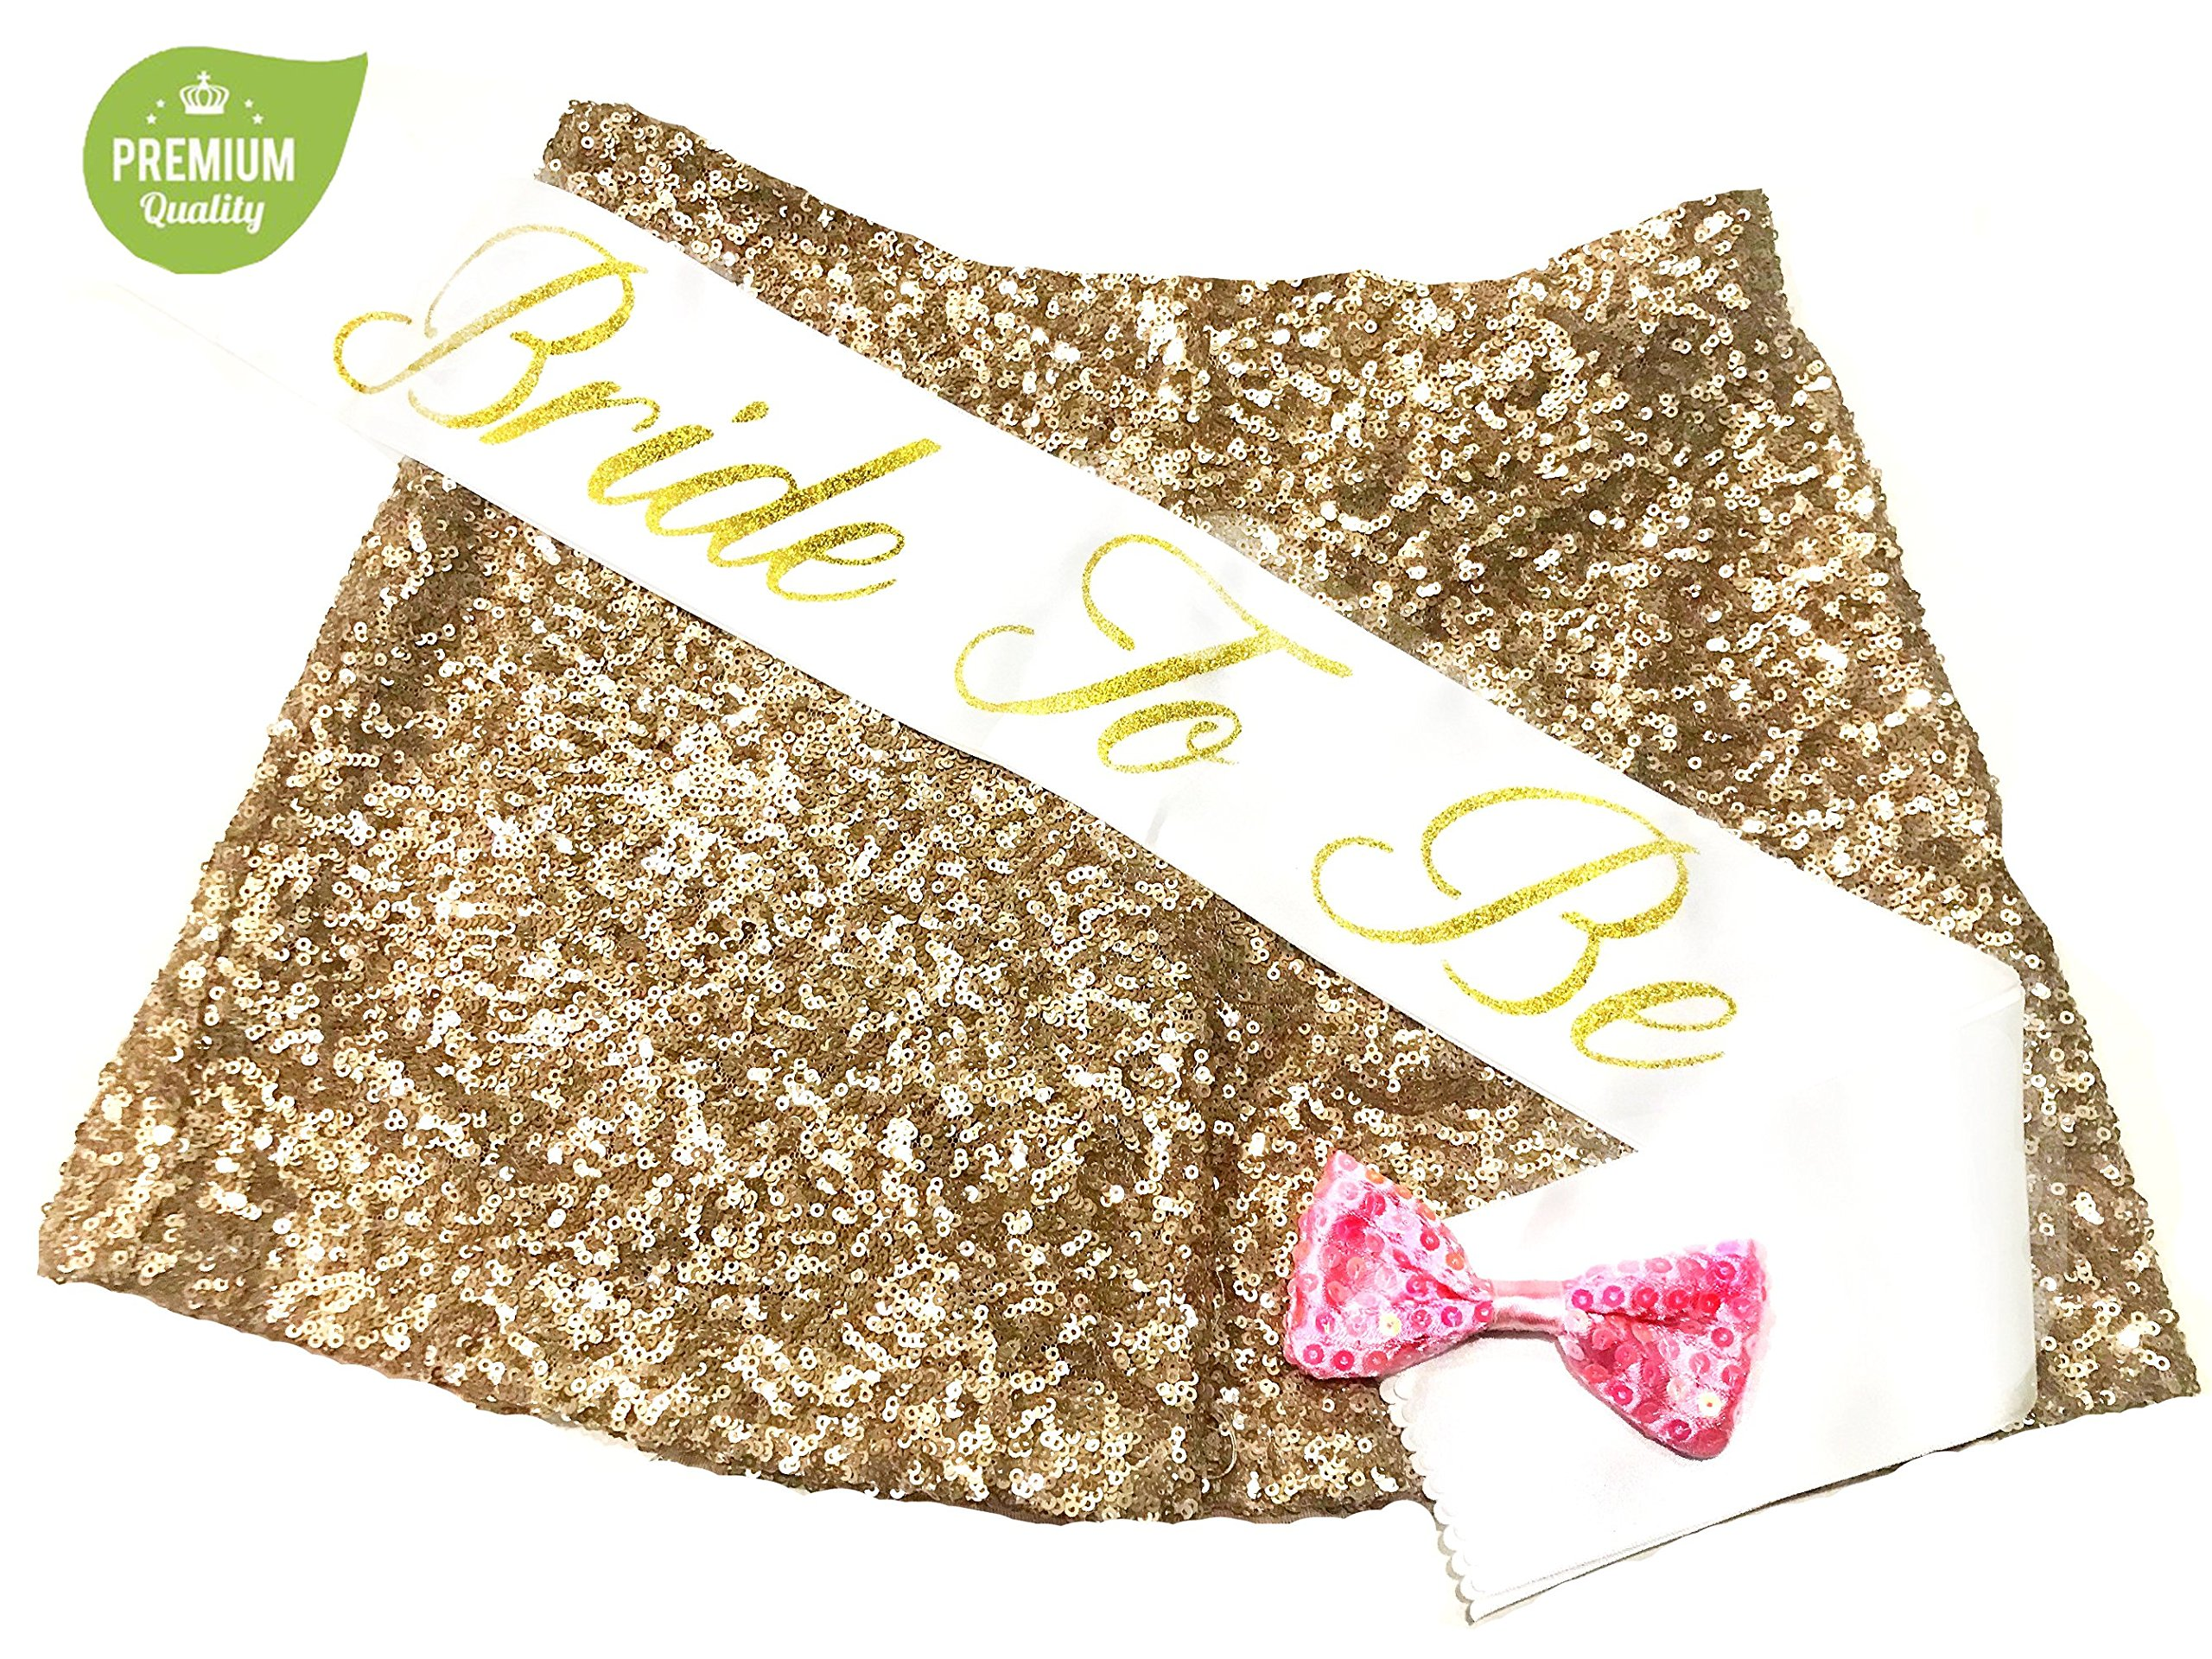 Bachelorette Party Decorations Kit Gold - Pink Heart Banner, Bridal Shower Sash, Bride to Be Banner, Bachelorette Party Straws, Bride Tribe Pins, Gold Balloons by Montpelle (Image #4)